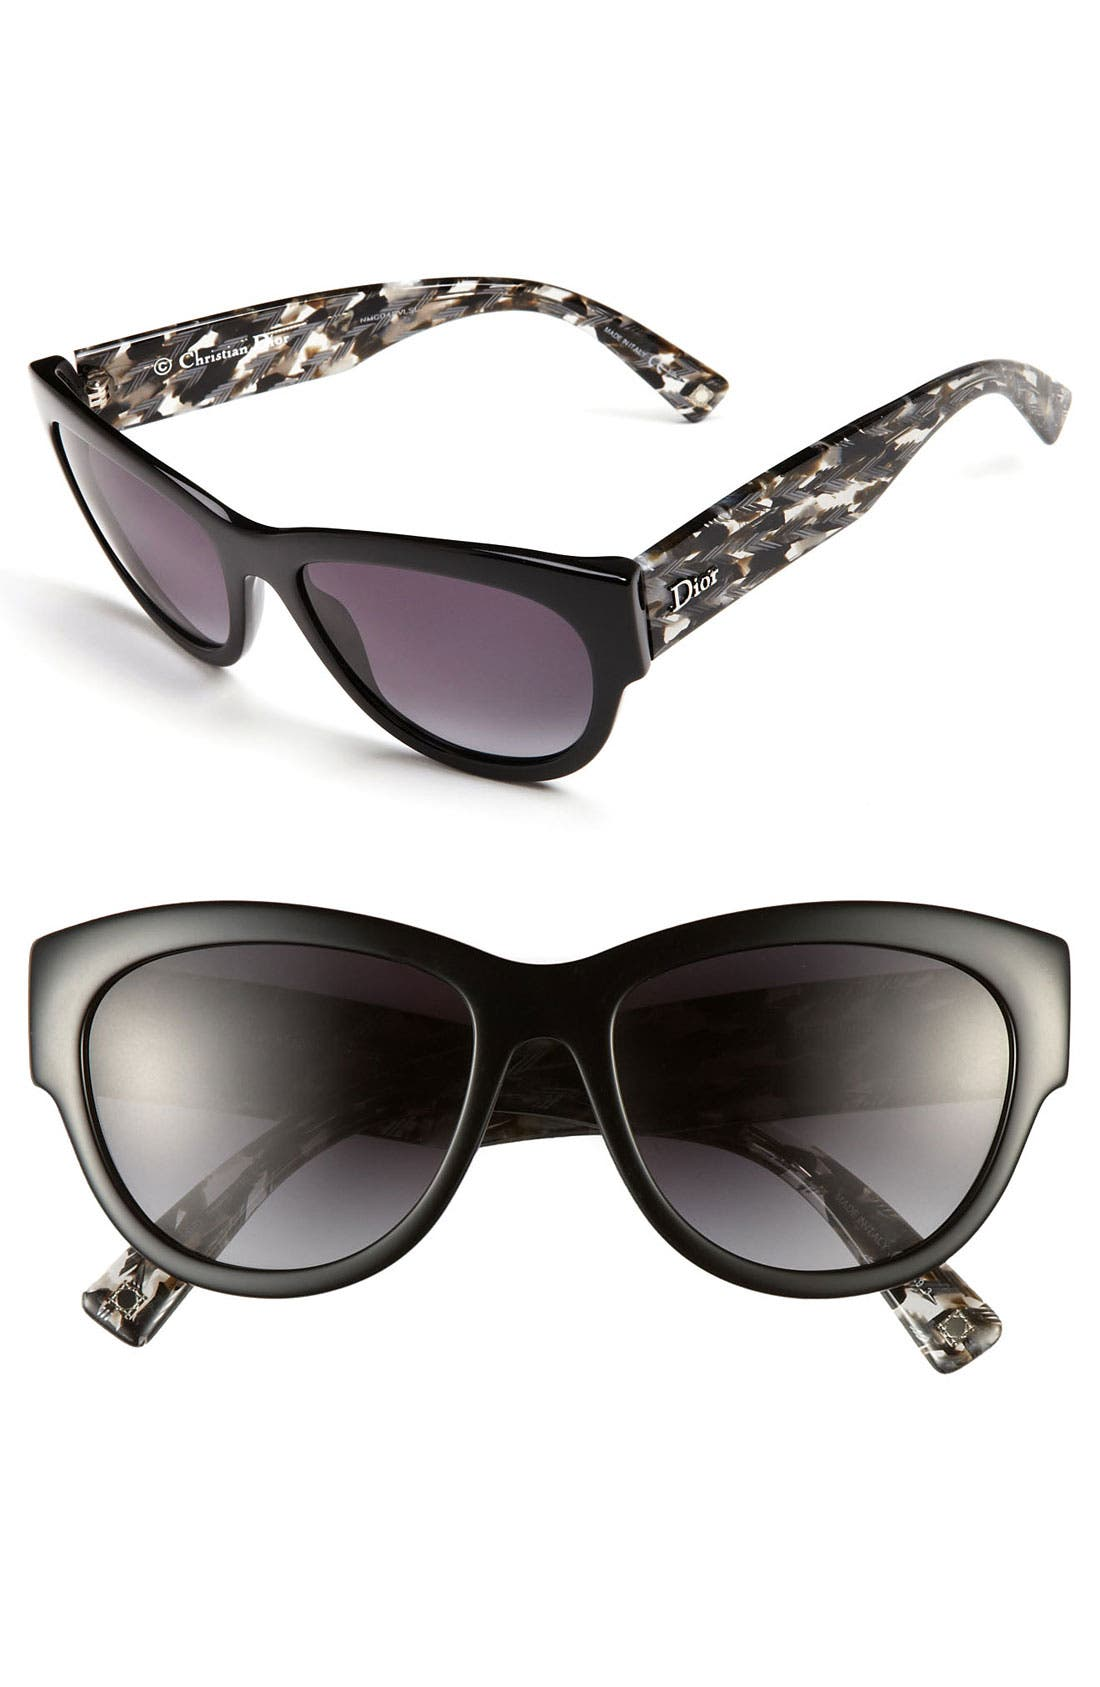 Alternate Image 1 Selected - Dior 'Flanelle' 56mm Sunglasses